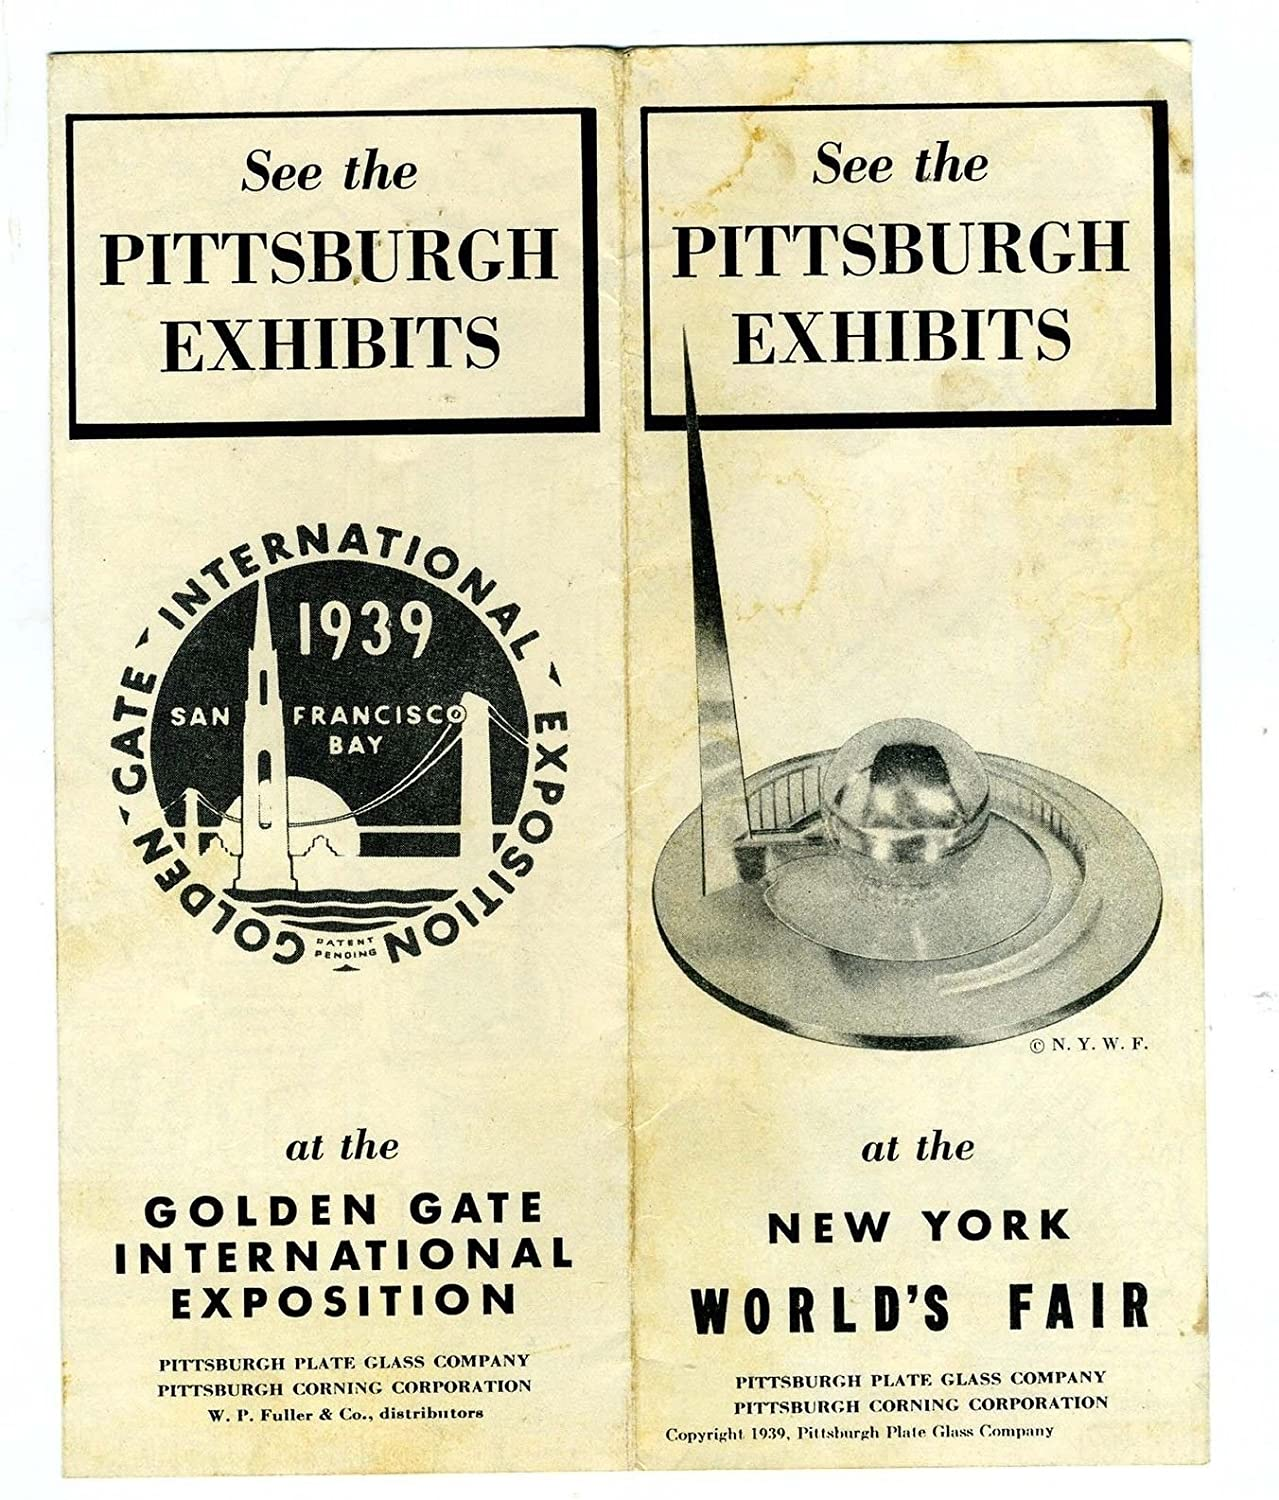 1939 Genuine Pittsburgh Exhibits Brochure NY OFFicial site Fair Gate Golden Int Worlds